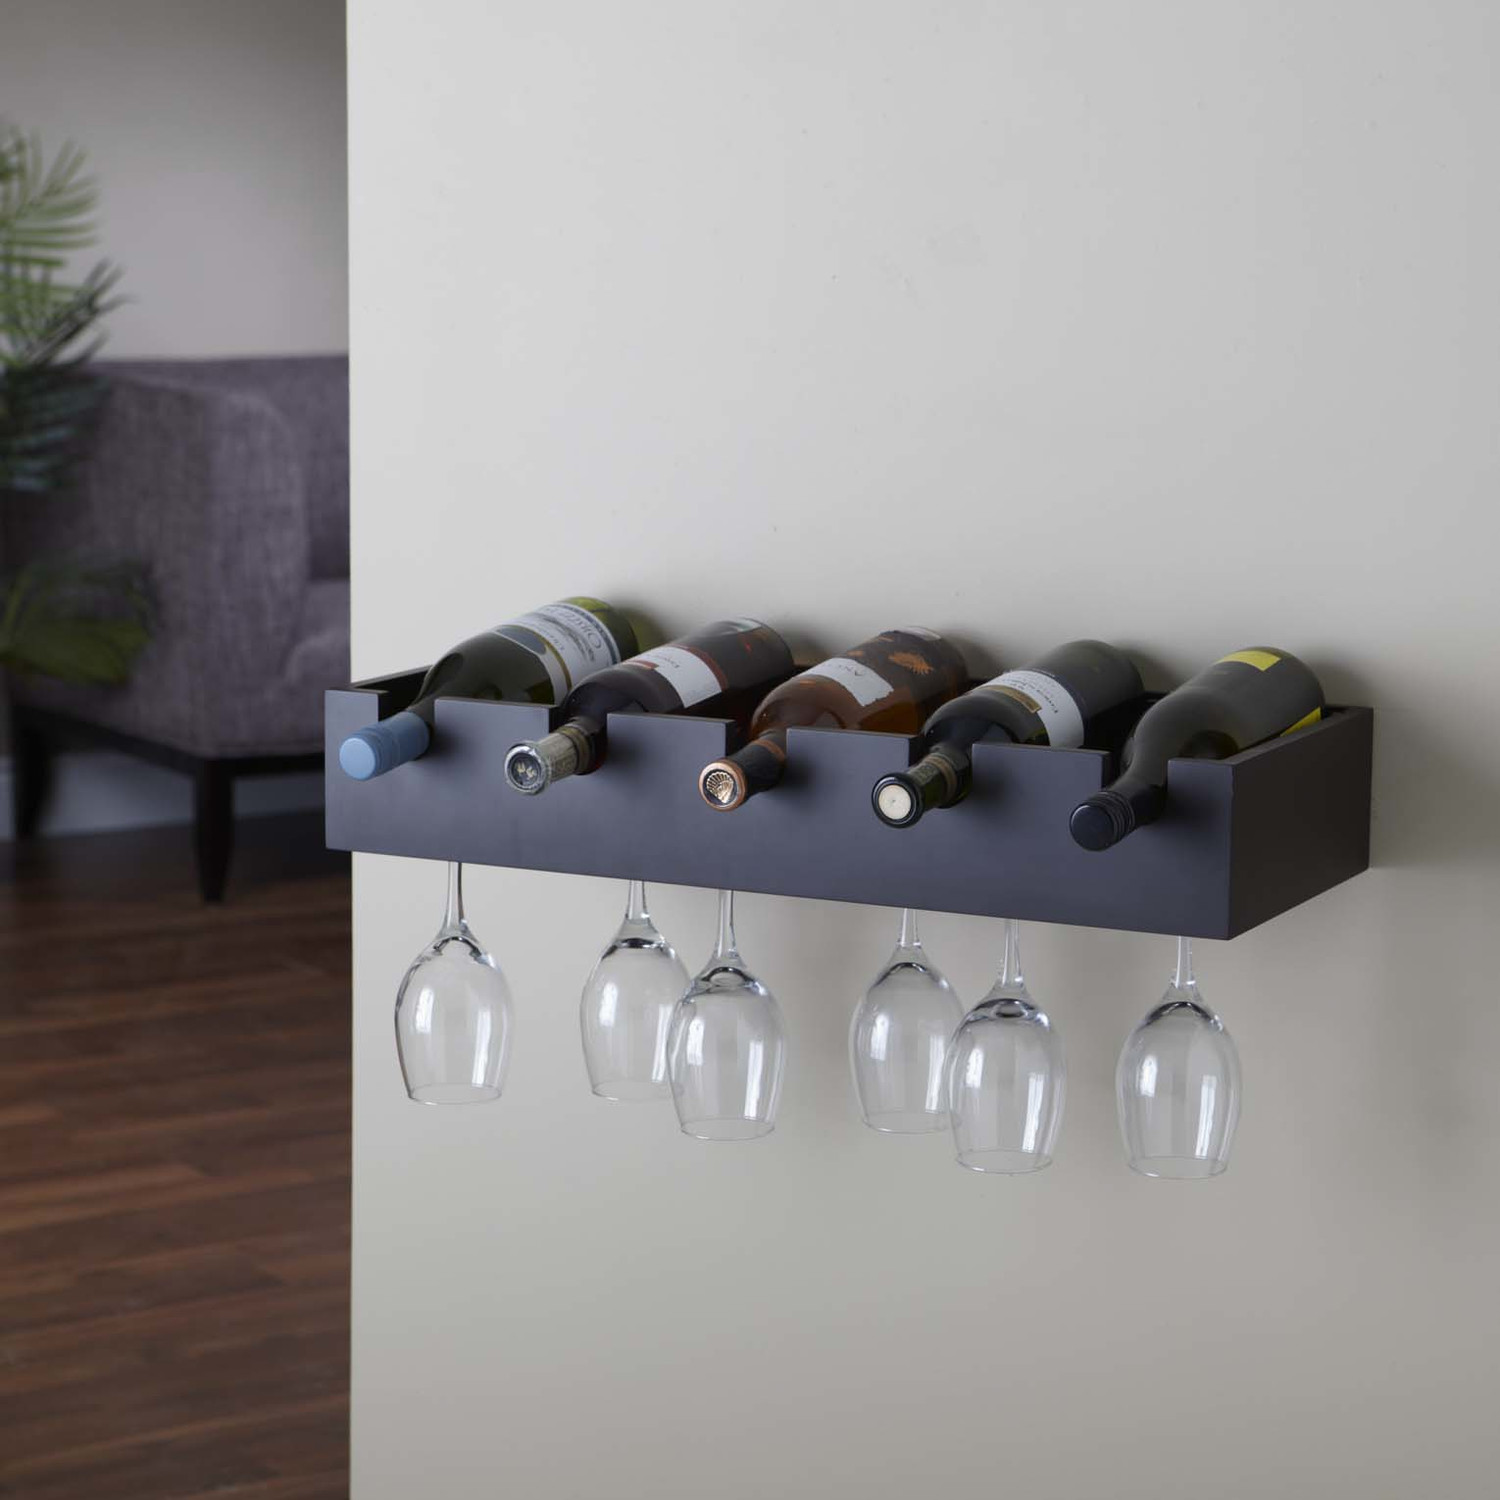 cool wall mounted wine glass holder homesfeed. Black Bedroom Furniture Sets. Home Design Ideas